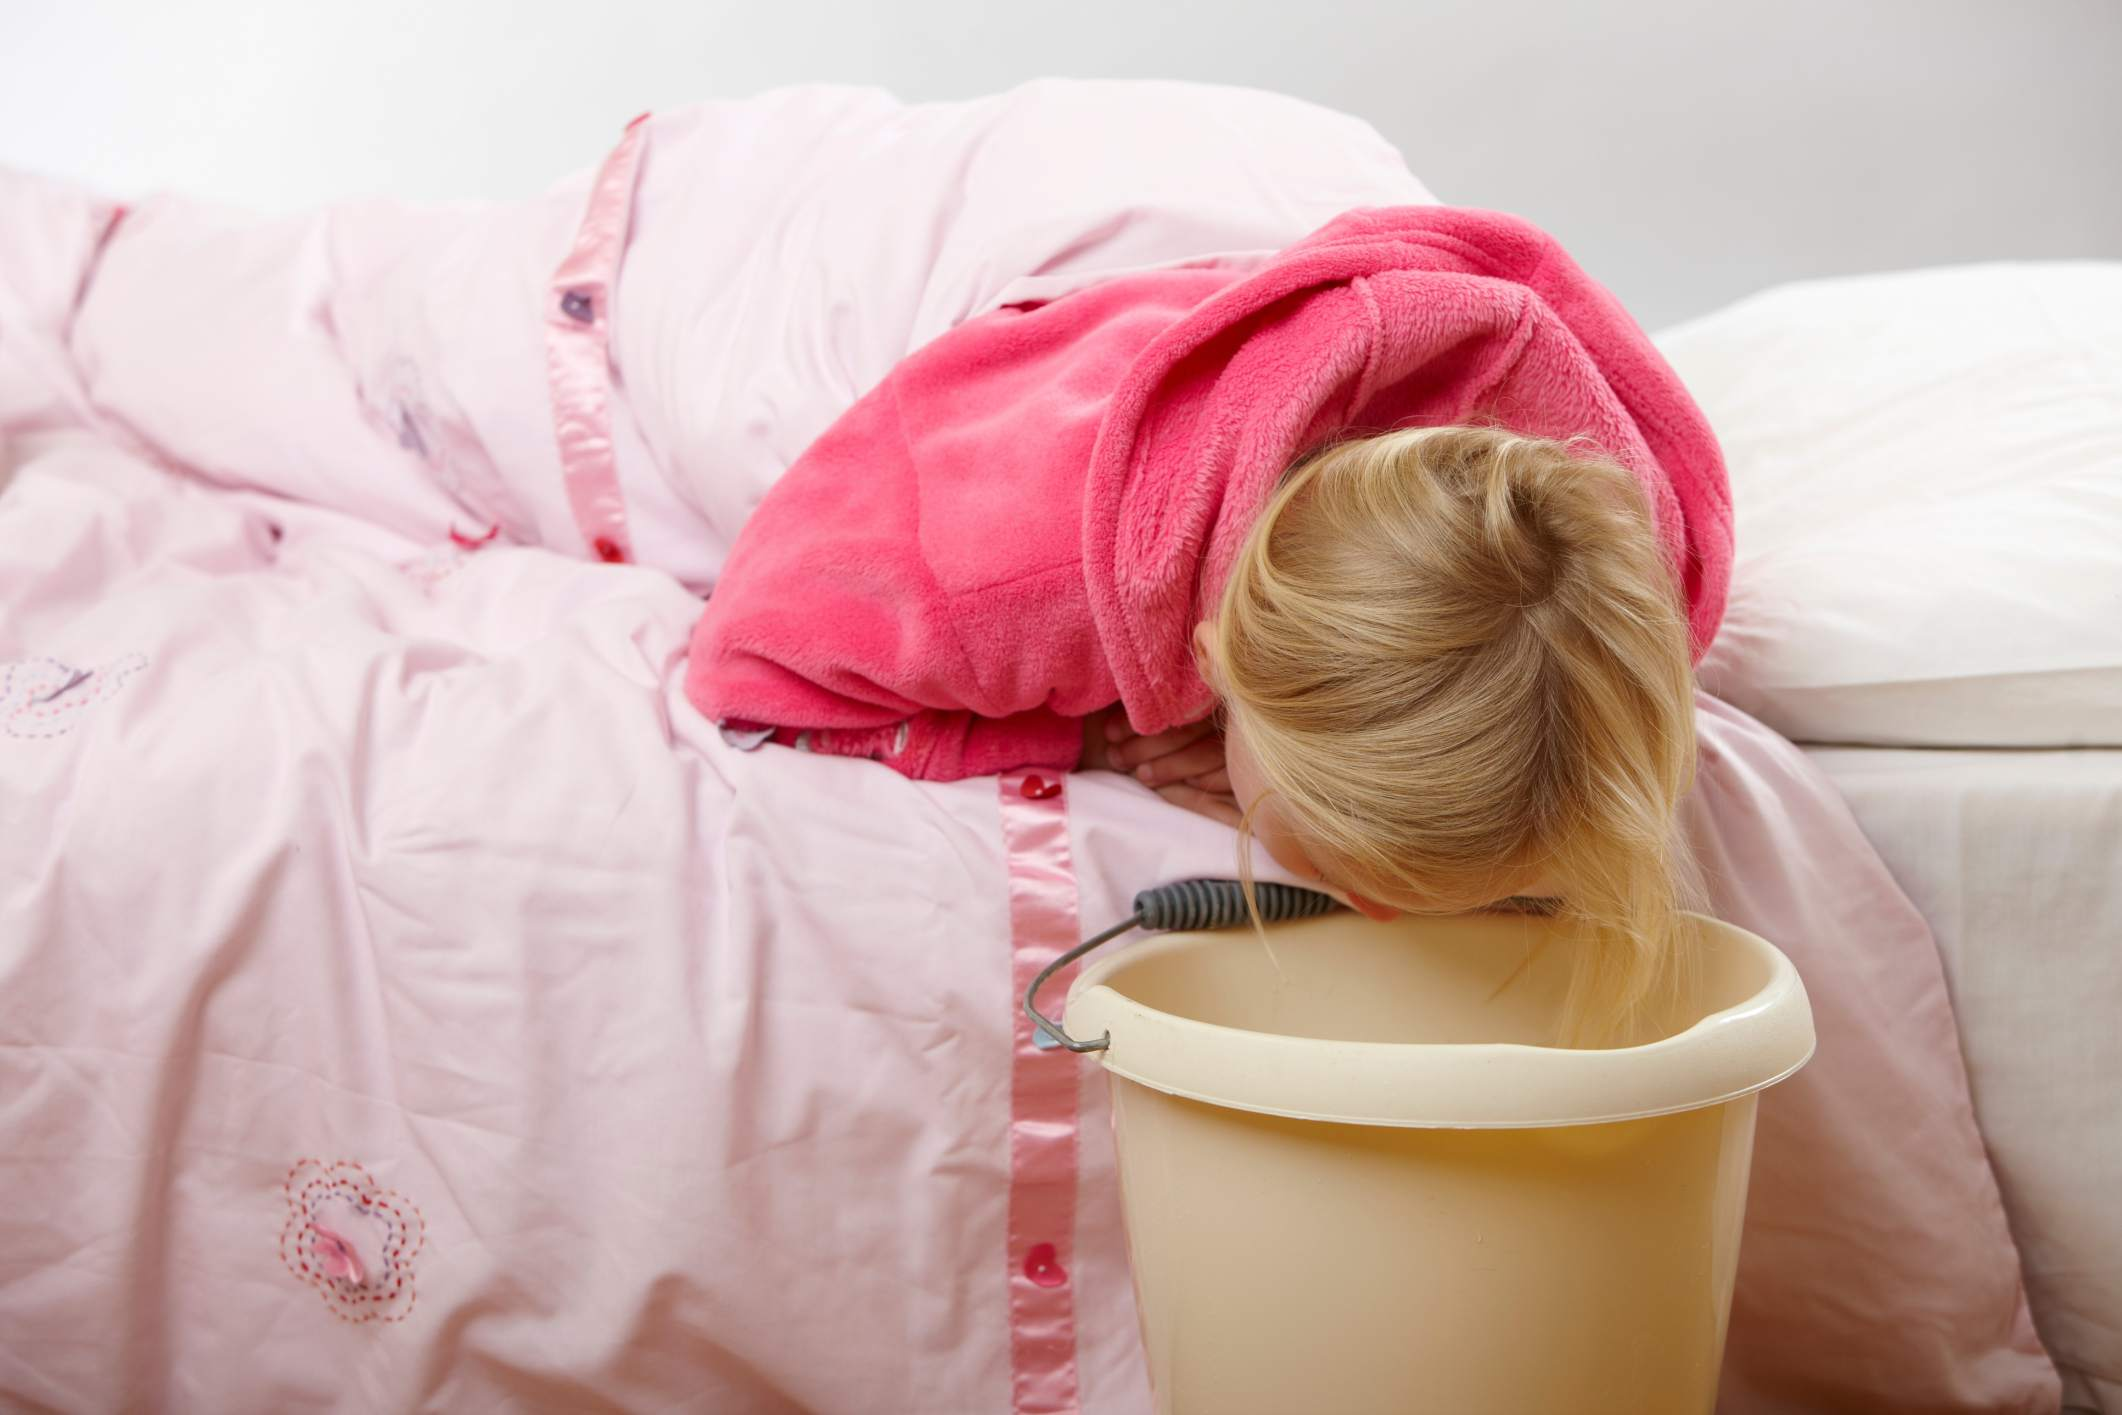 A girl vomiting into a bucket